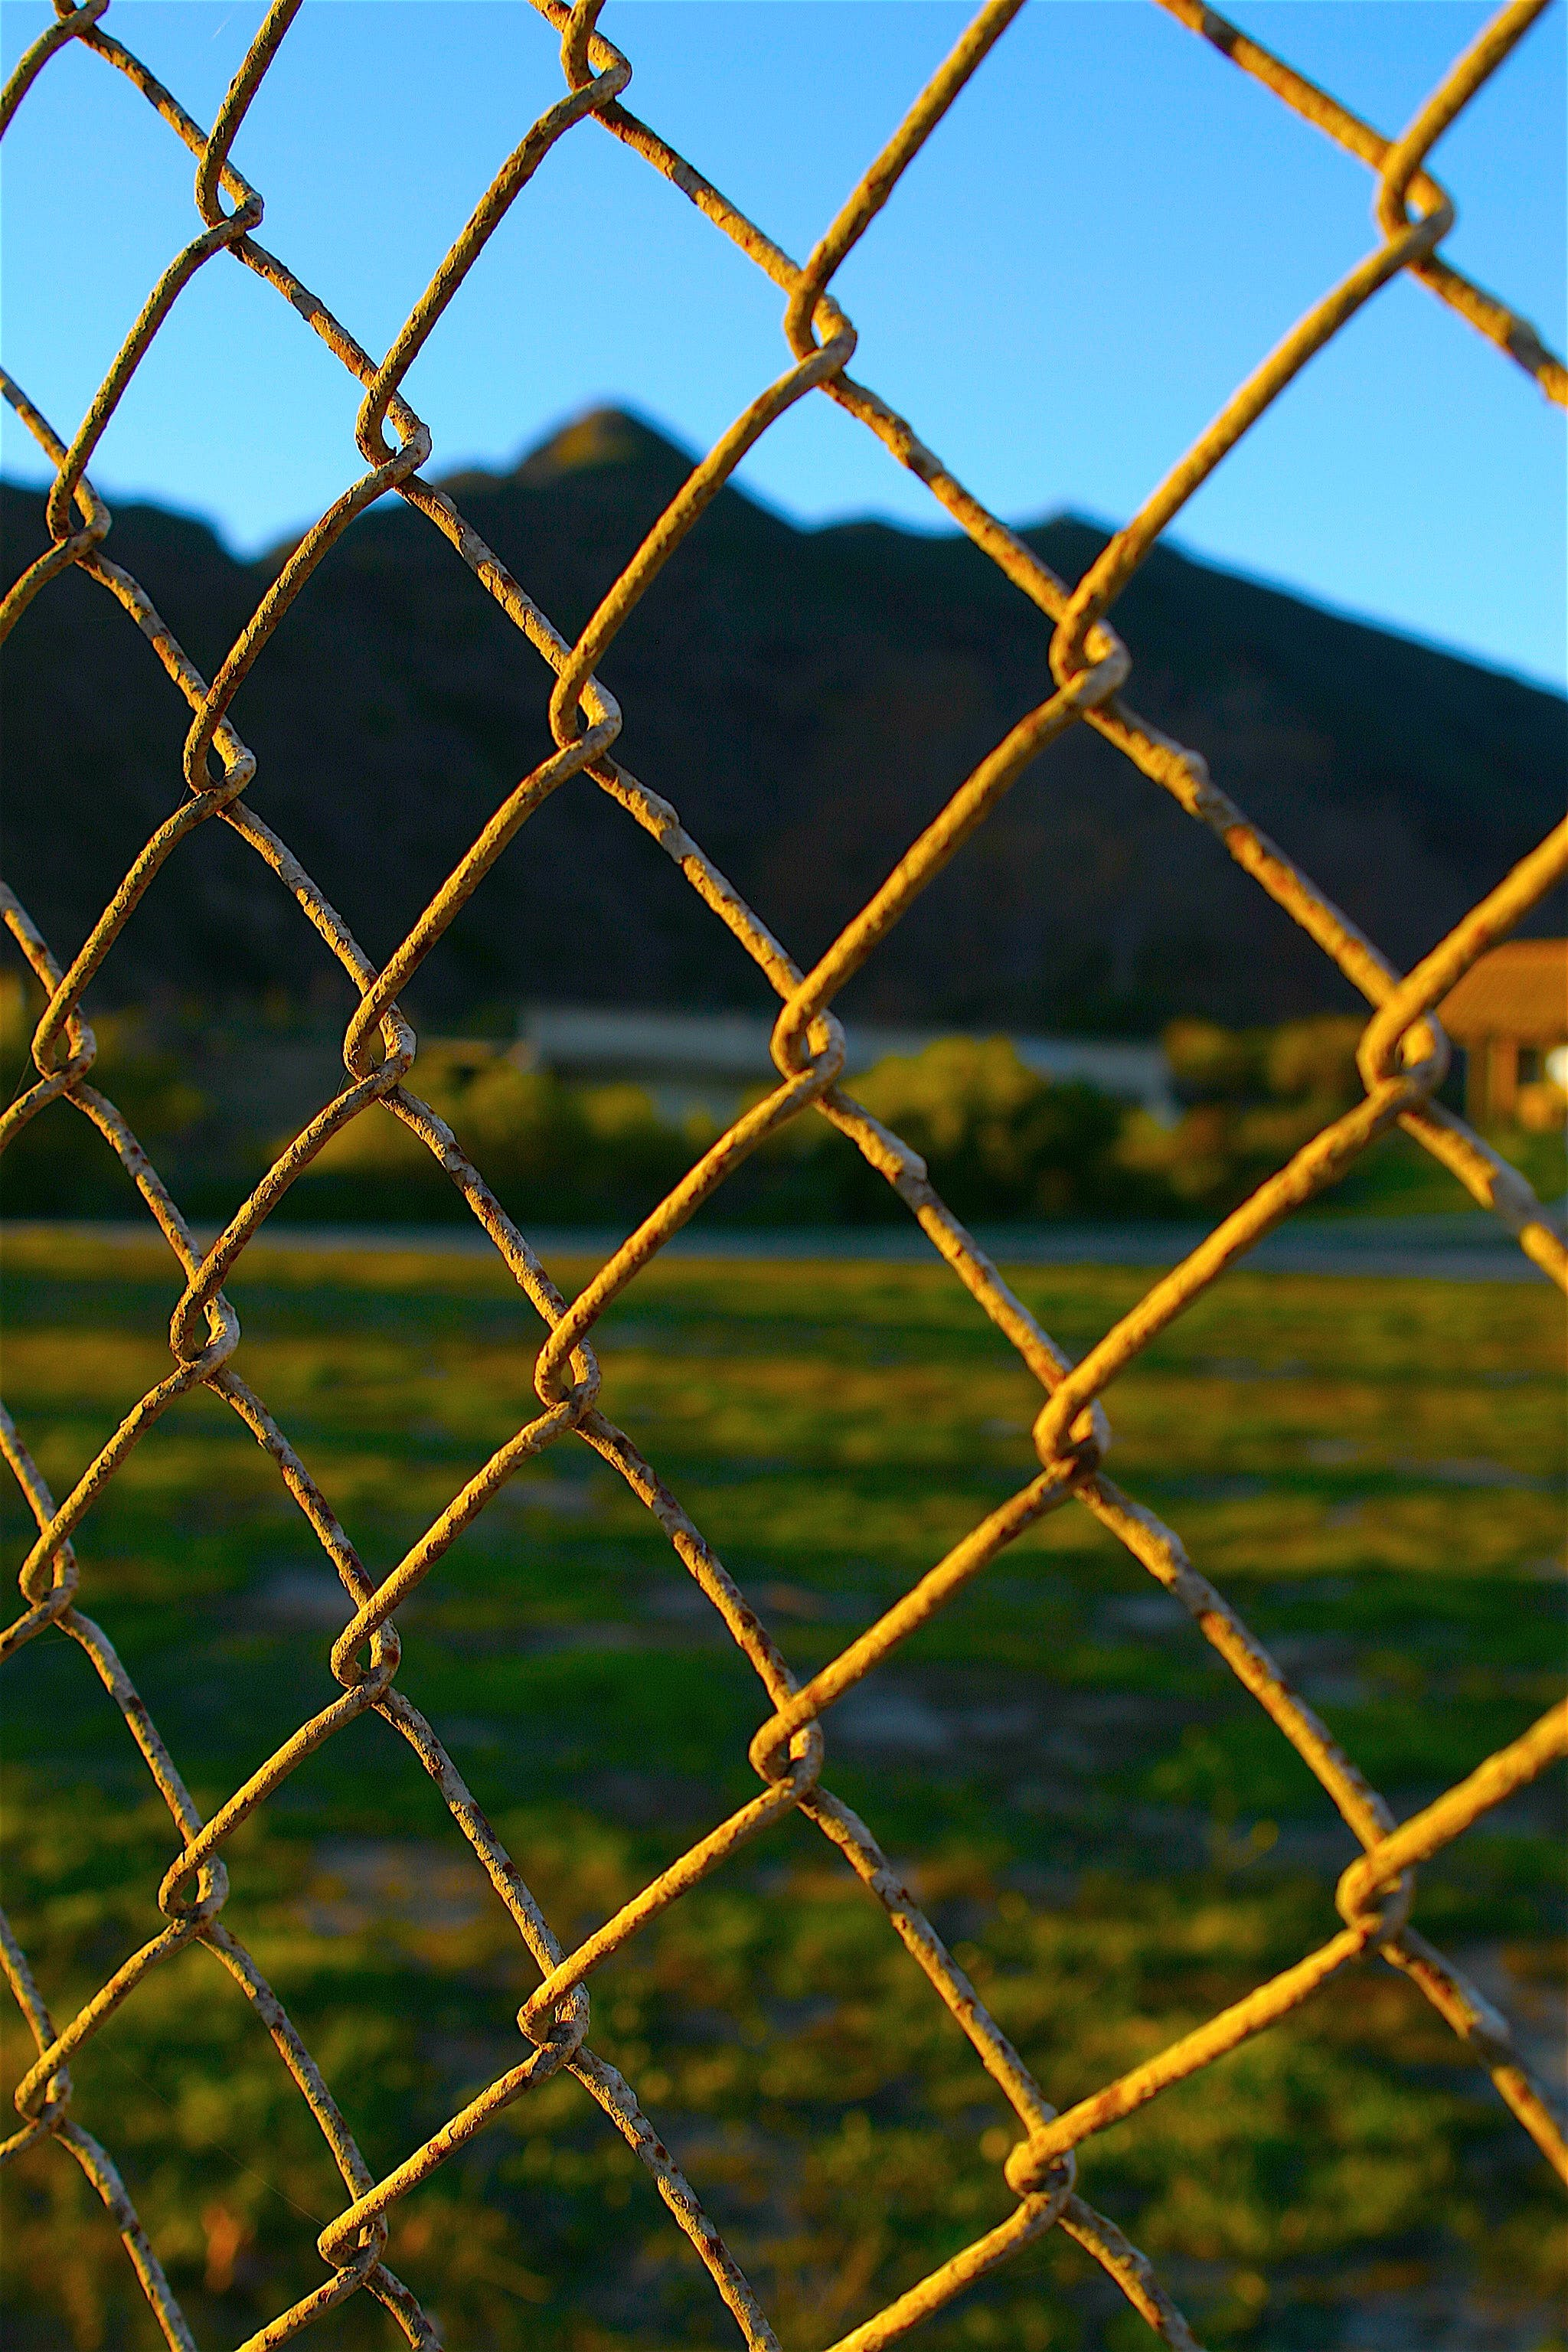 Free stock photo of chain link fence, nature